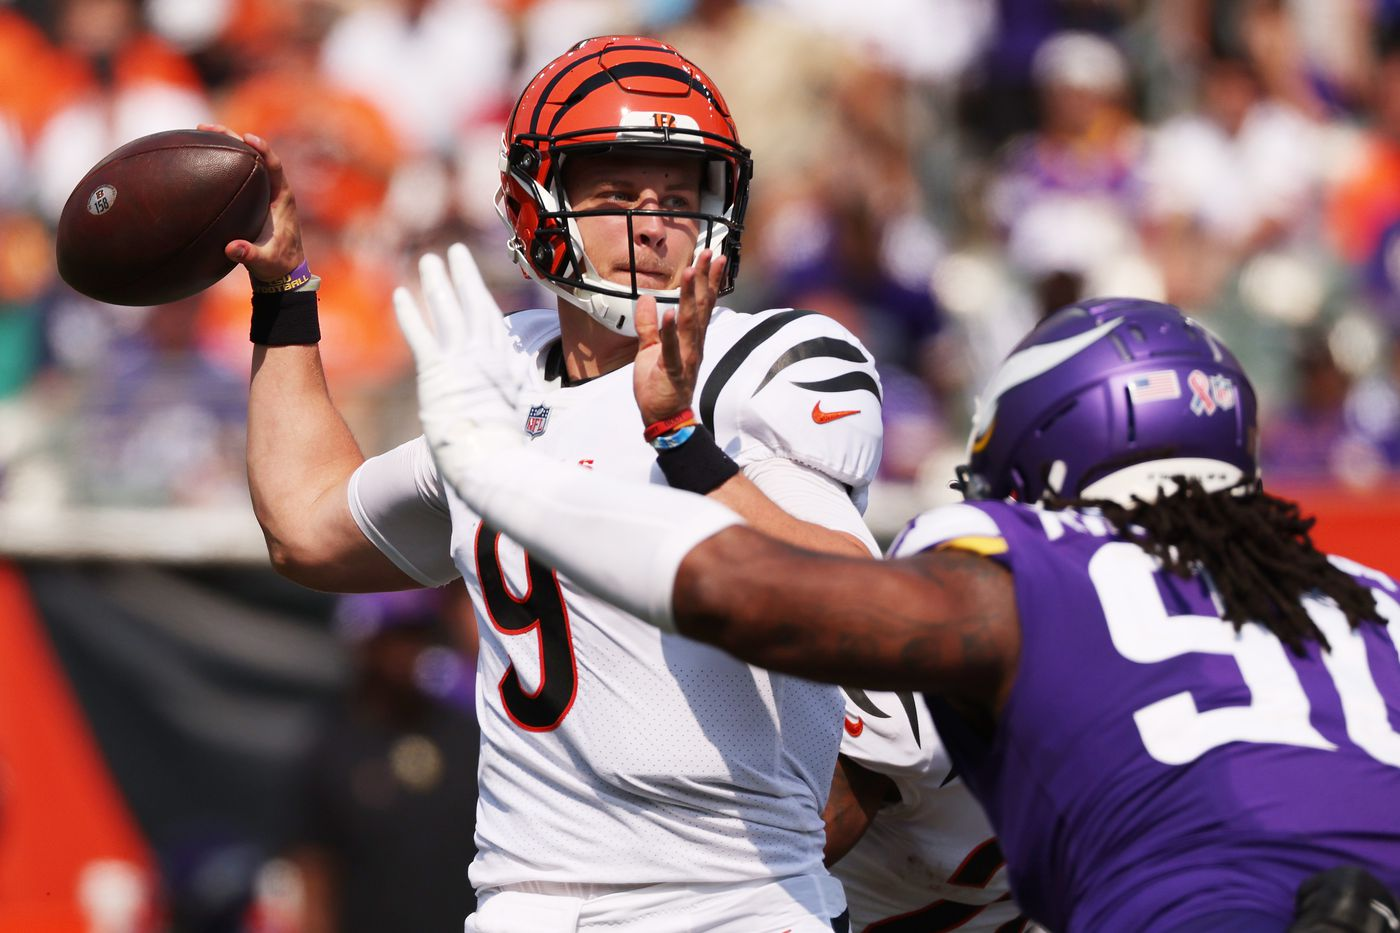 8 winners and 4 losers from Bengals upset over Vikings in OT - Cincy Jungle